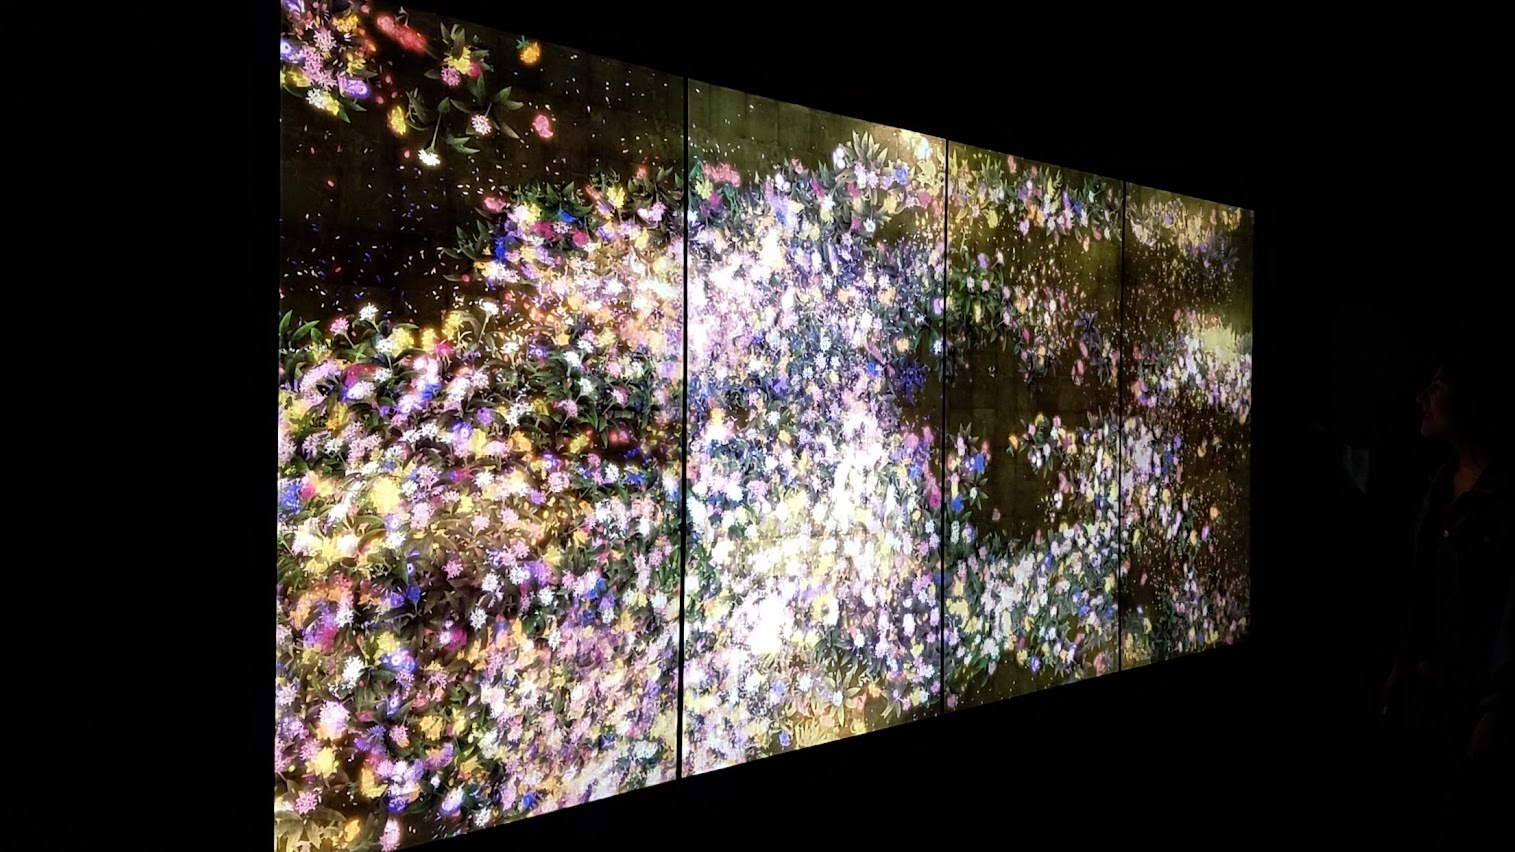 Flowers and People as part of Pace Art + Technology exhibit Living Digital Spaces and Future Parks. This artwork is rendered in real time by a computer program. The flowers bud, grow, and blossom before their petals begin to wither, and eventually fade away. The cycle of growth and decay repeats itself in perpetuity. Depending on the proximity of the viewer to the work, the flowers shed their petals all at once, wither and die, or come to life and blossom once again.